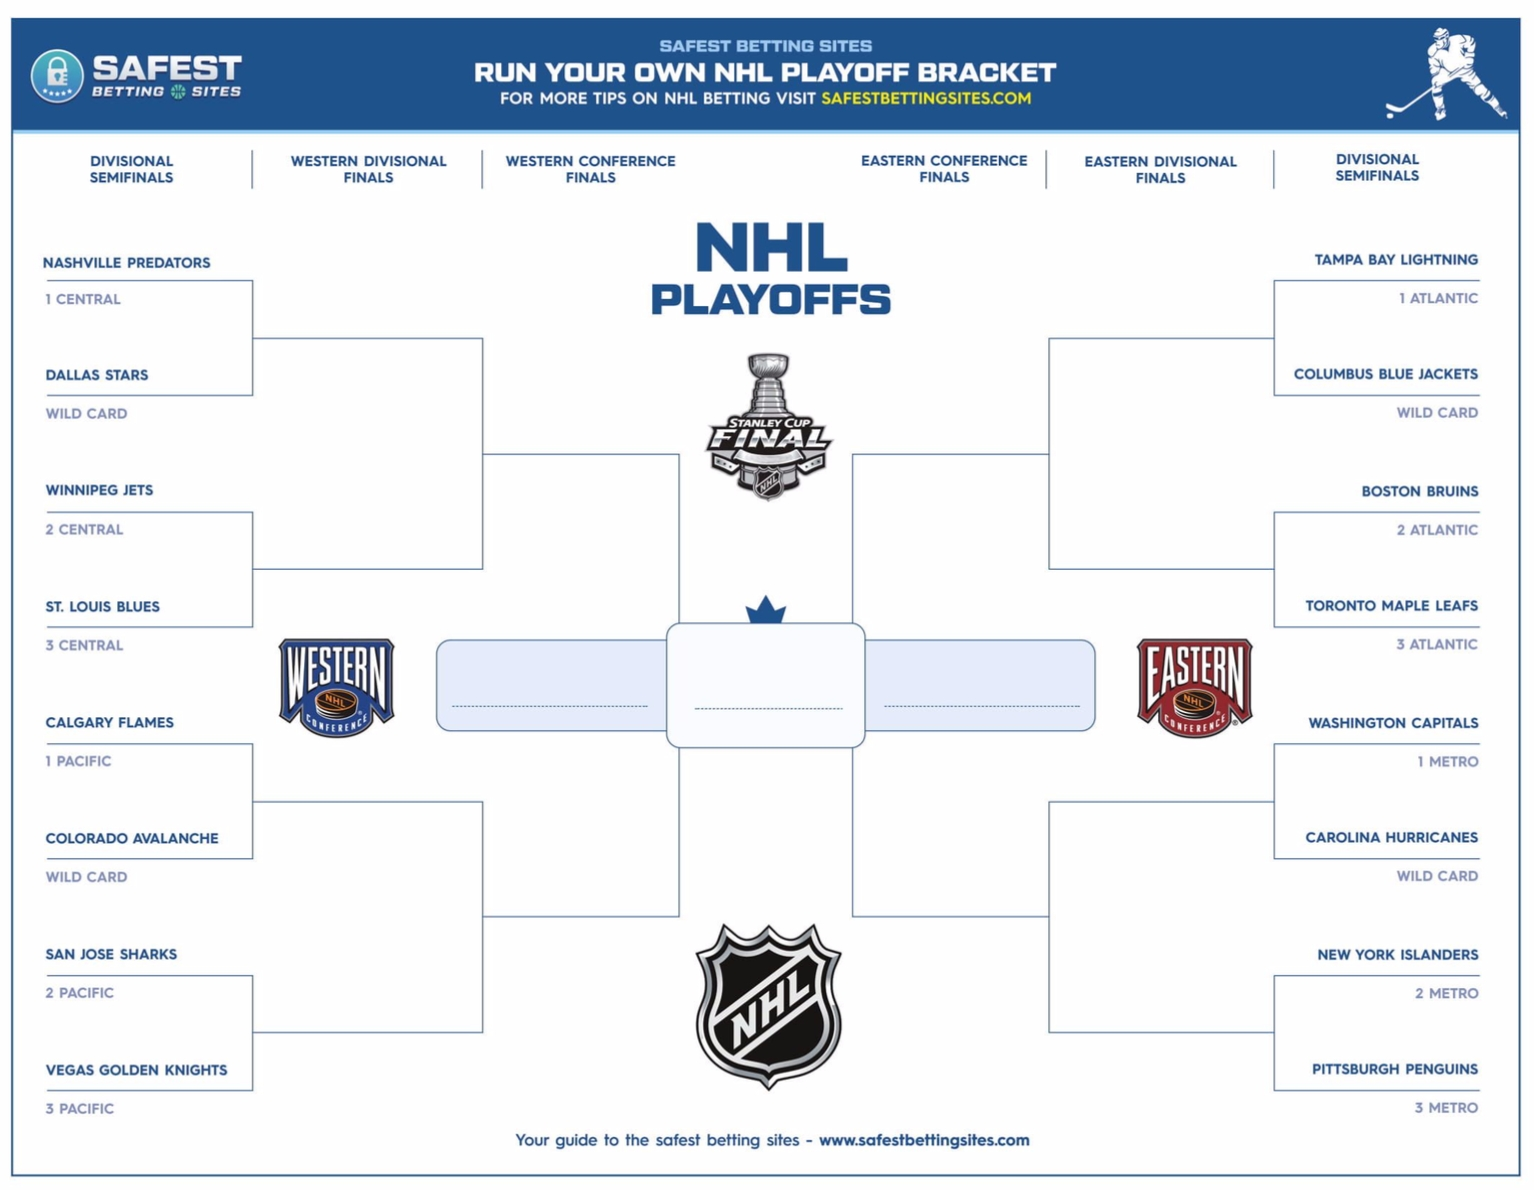 Nhl Playoff Bracket 2020 (Printable Pdf) - Official Stanley regarding Printable Nfl Payoff Schedule 2019-2020